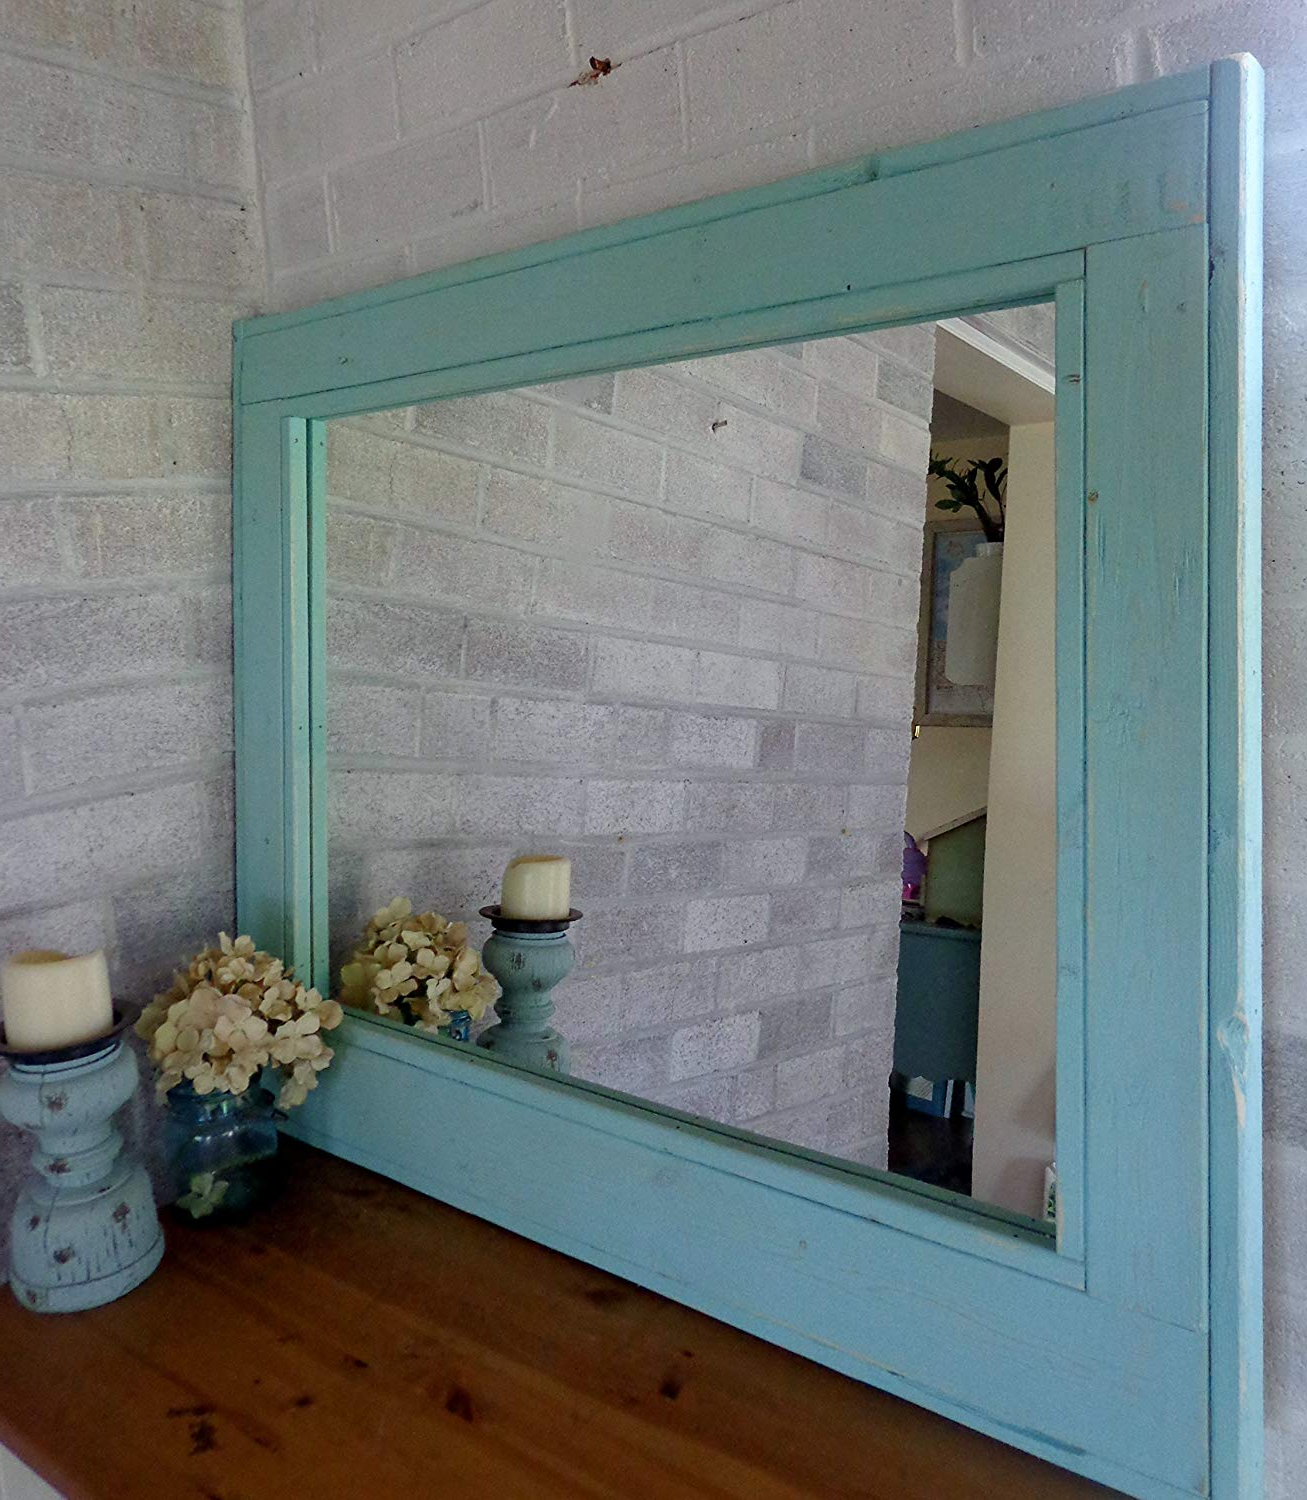 Well Known Blue Framed Wall Mirrors Pertaining To Herringbone Reclaimed Wood Framed Mirror, Available In 4 Sizes And 20 Paint  Colors: Shown In Sea Blue – Large Framed Wall Mirror – Mirror Decorative (View 12 of 20)